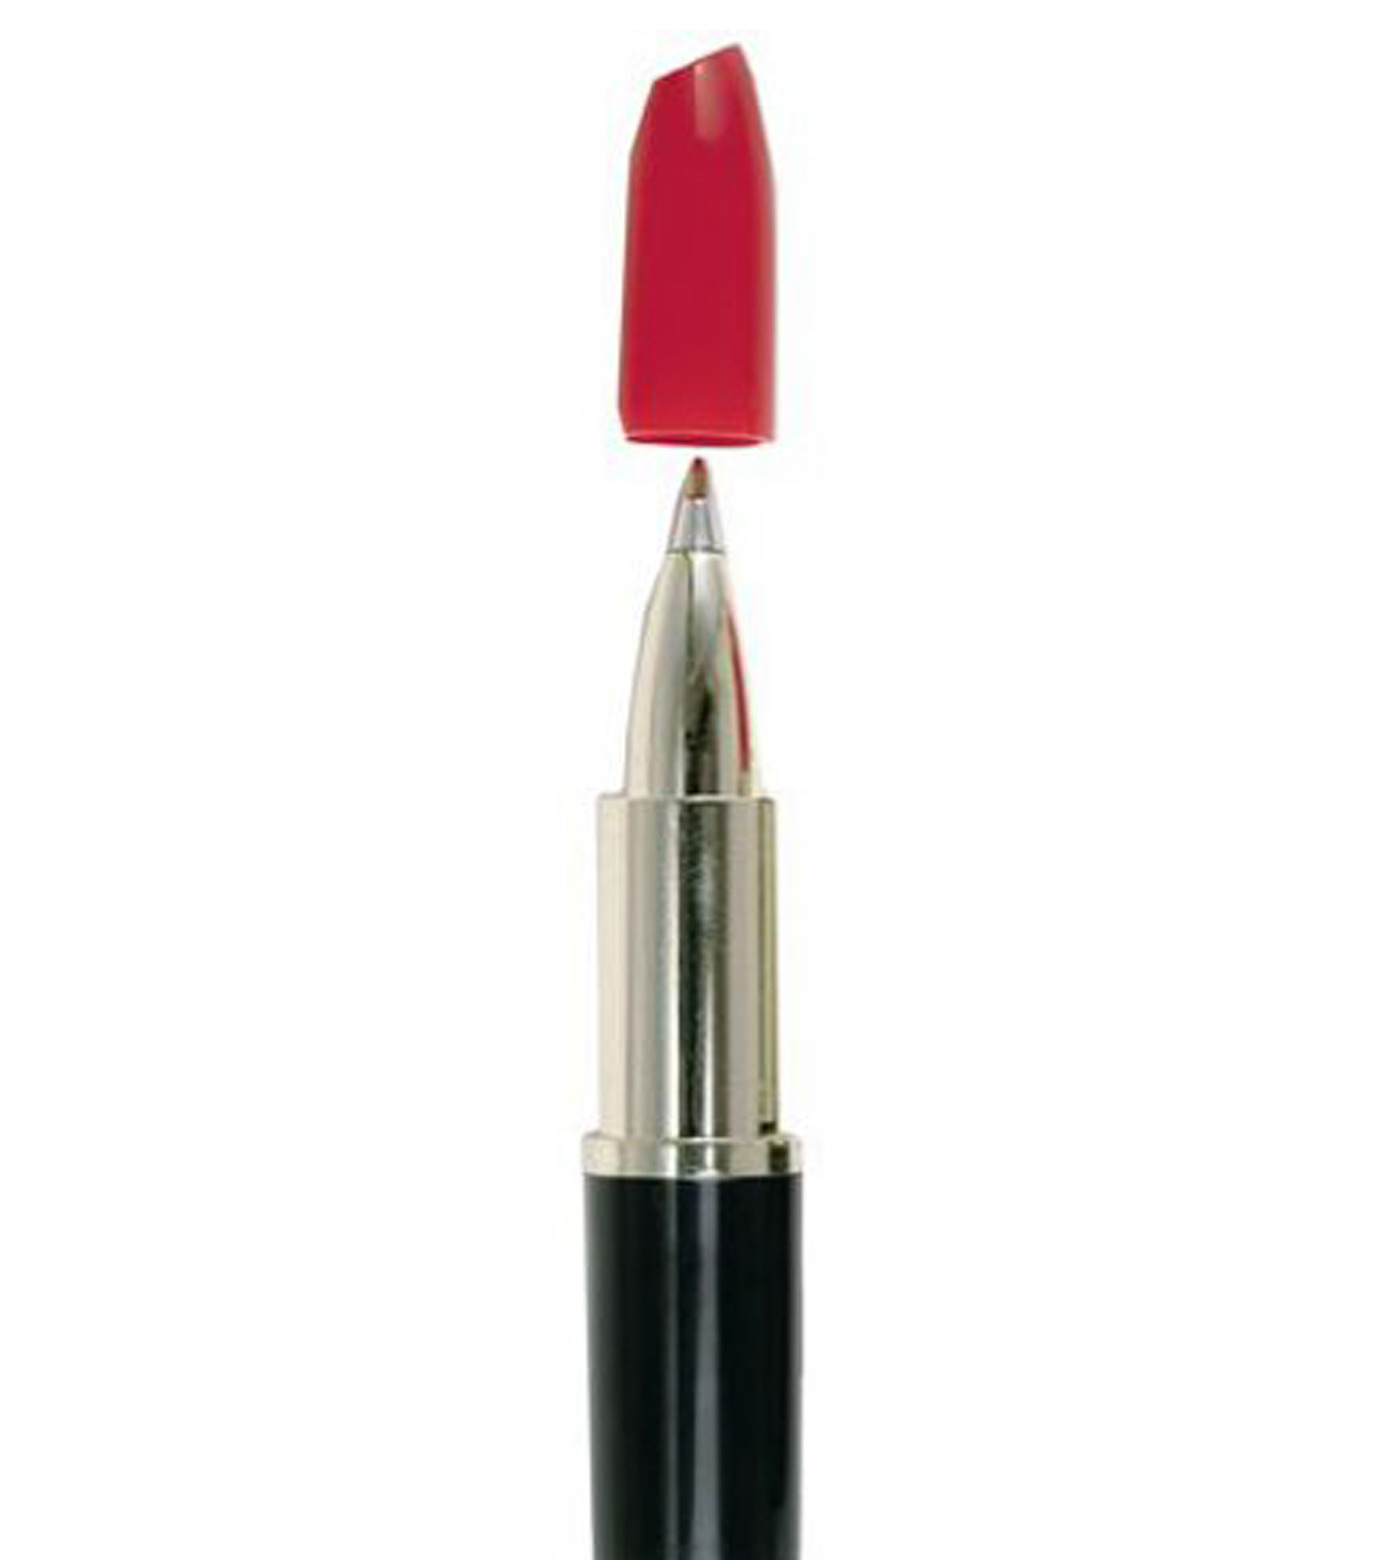 DCI(ディーシーアイ)のLipstick Pen-RED(OTHER-GOODS/OTHER-GOODS)-4698-62 拡大詳細画像2